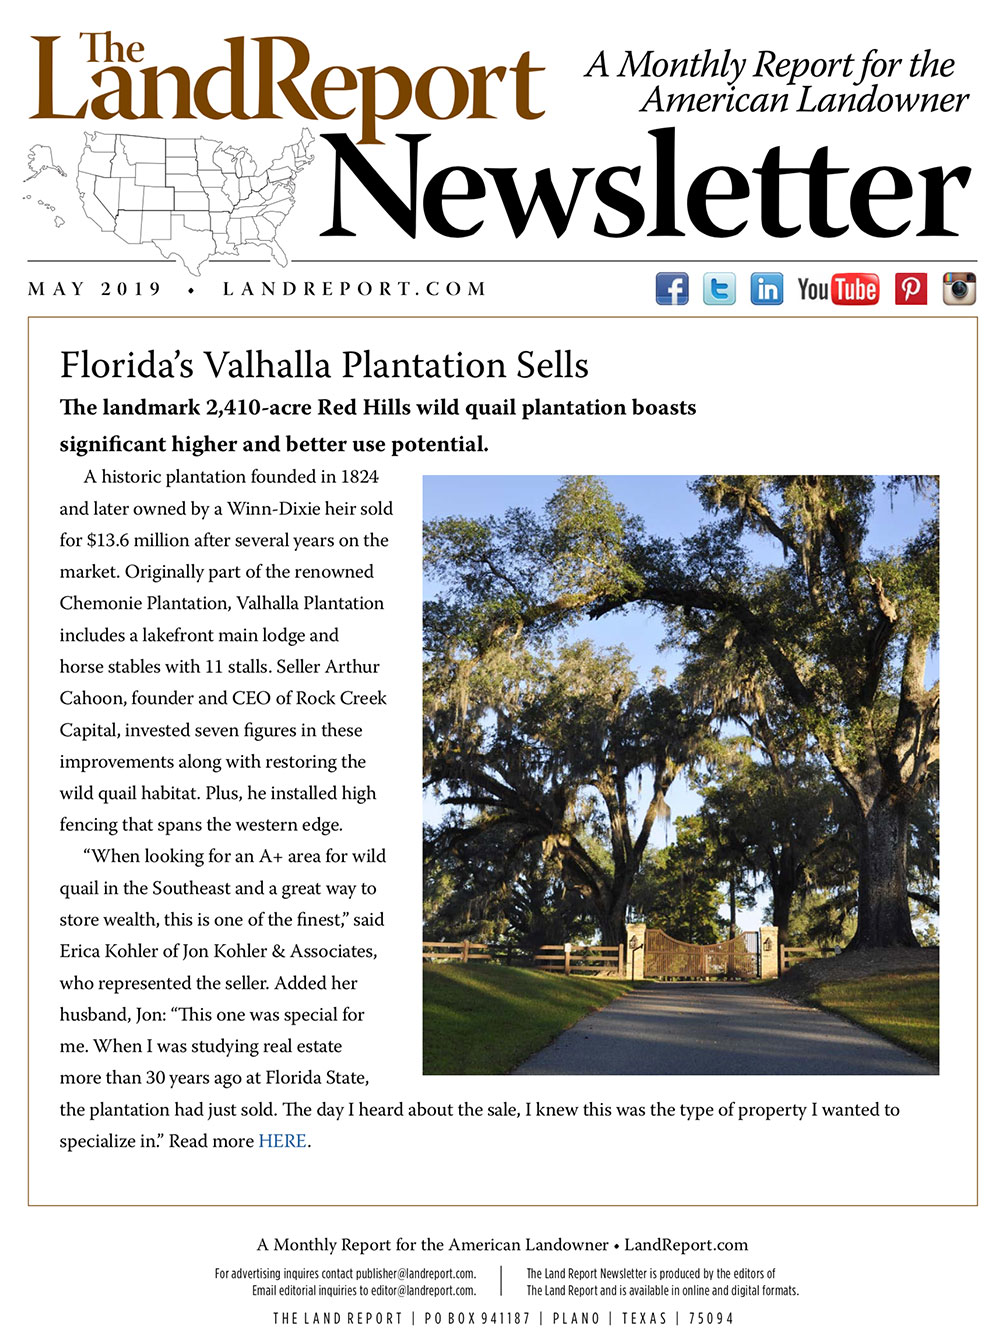 Land Report Newsletter May 2019